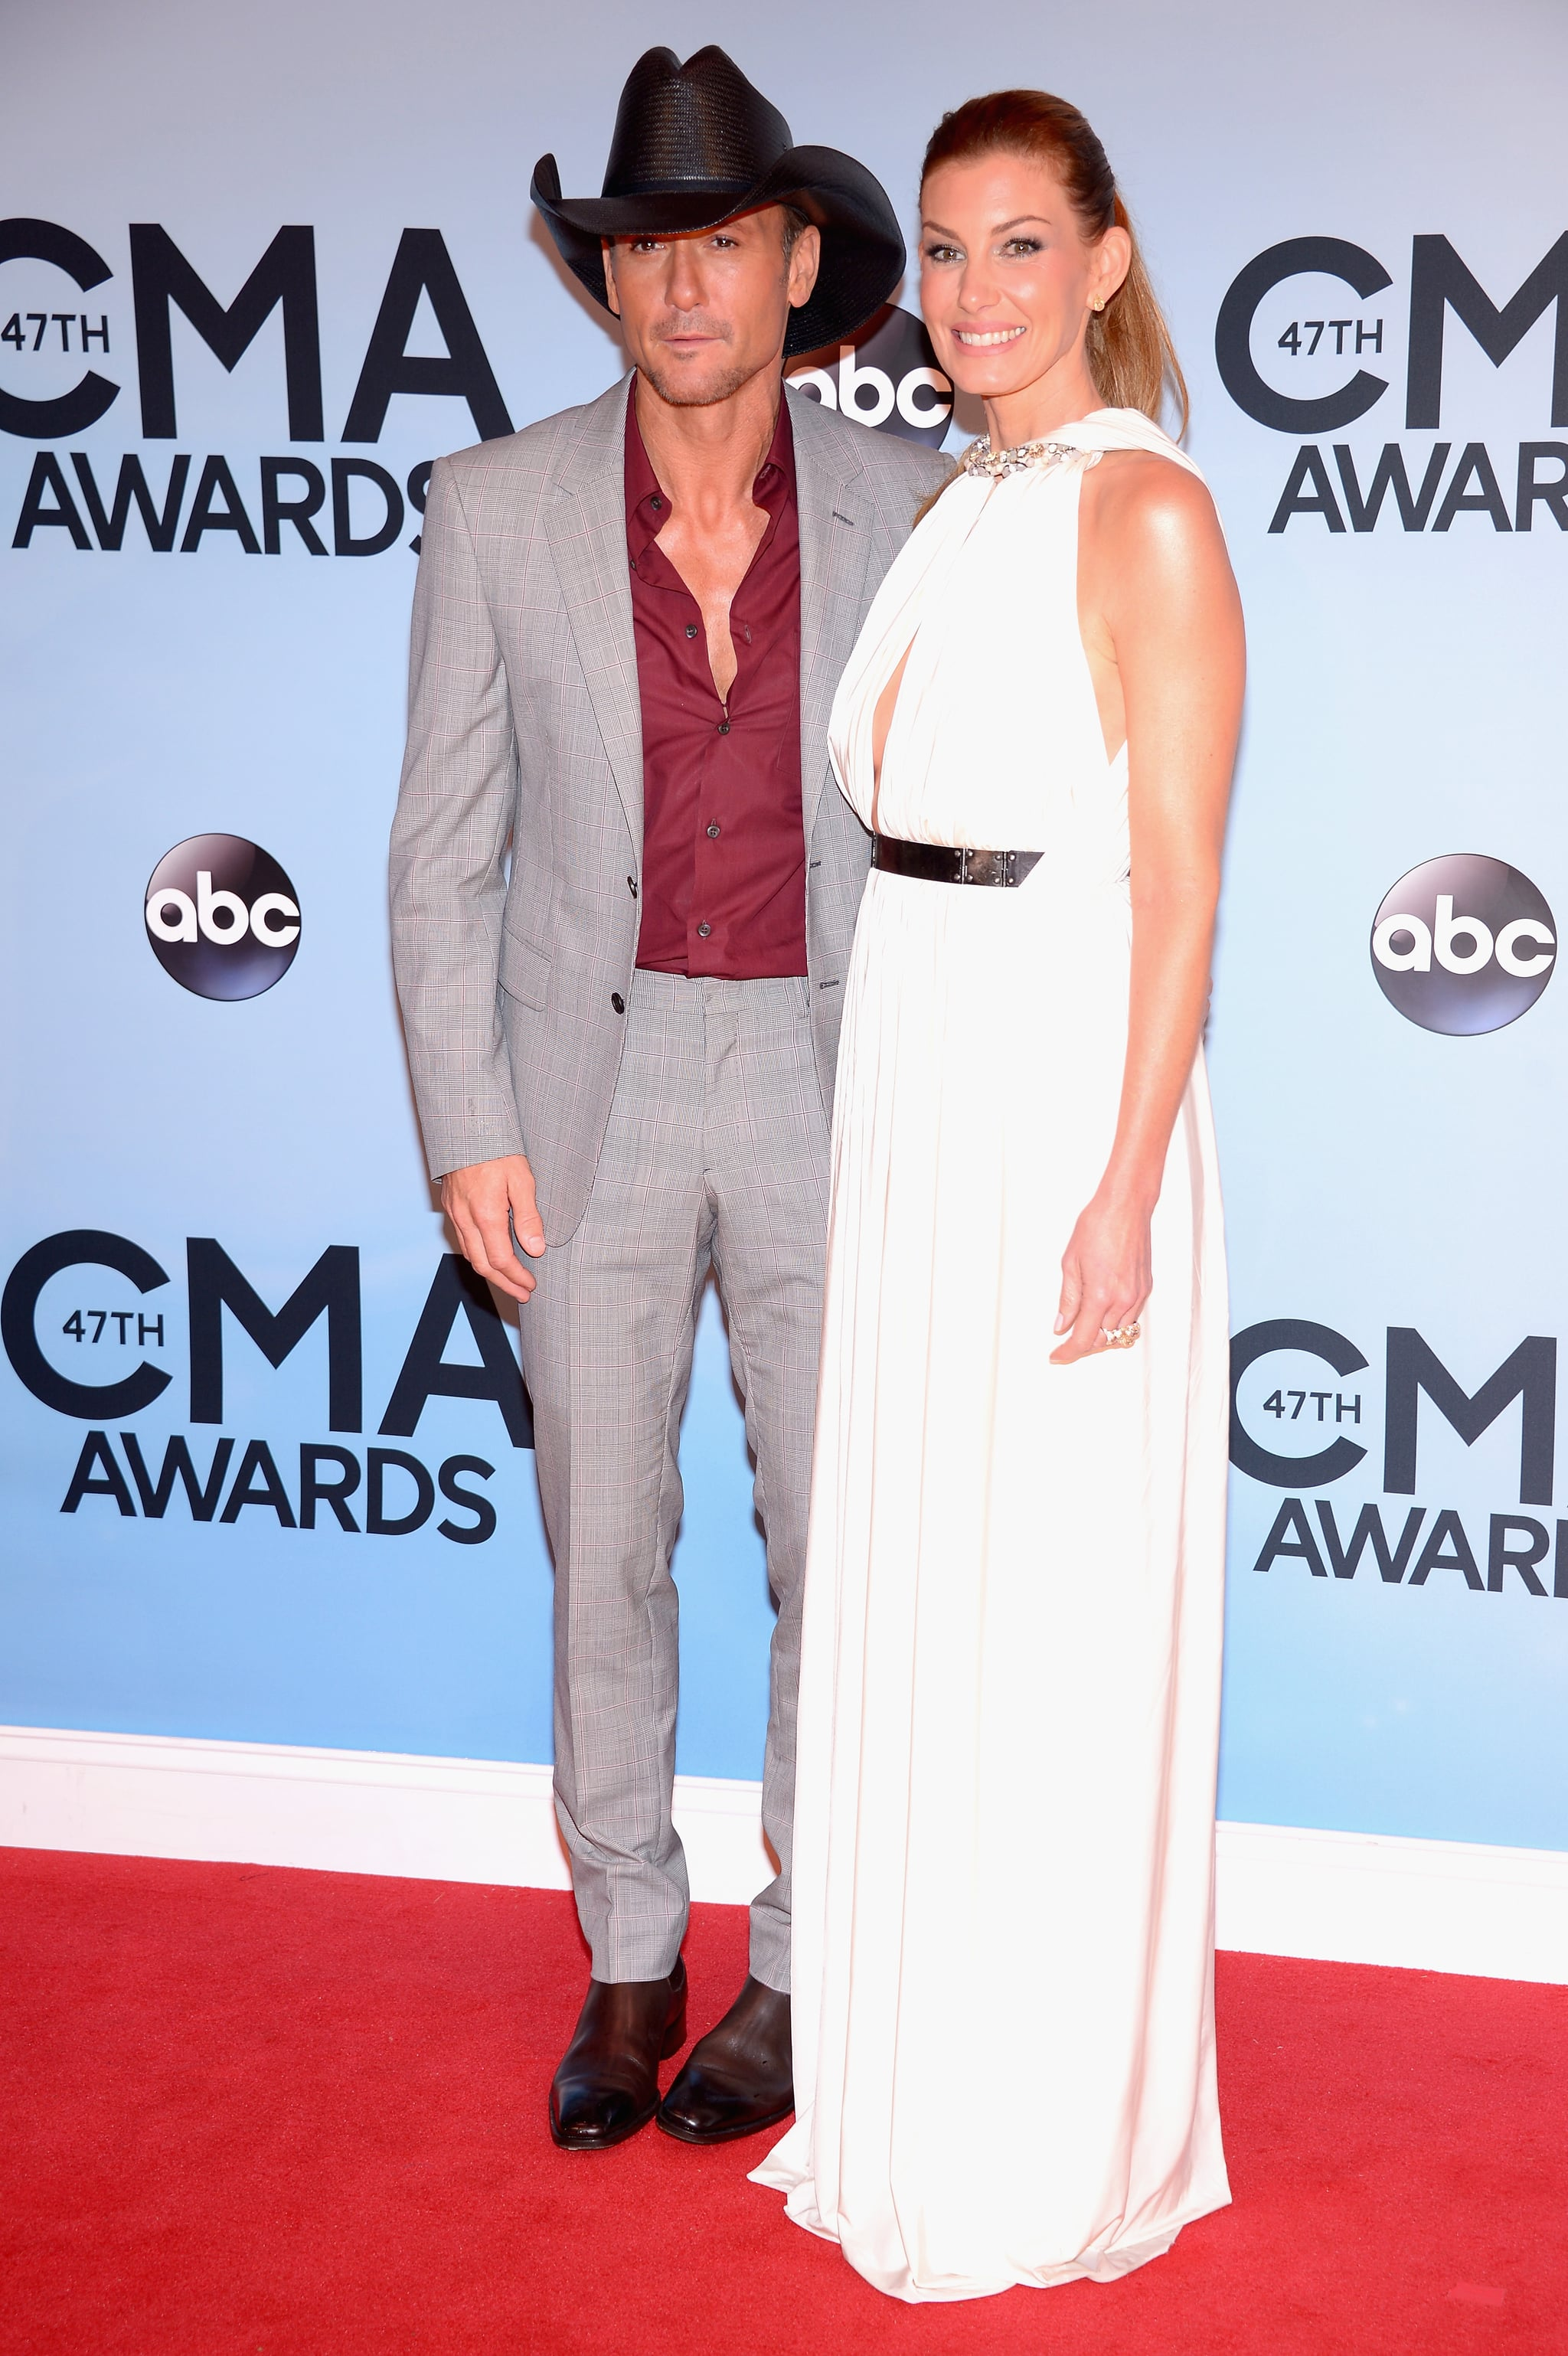 Tim McGraw and Faith Hill walked the CMAs red carpet together.